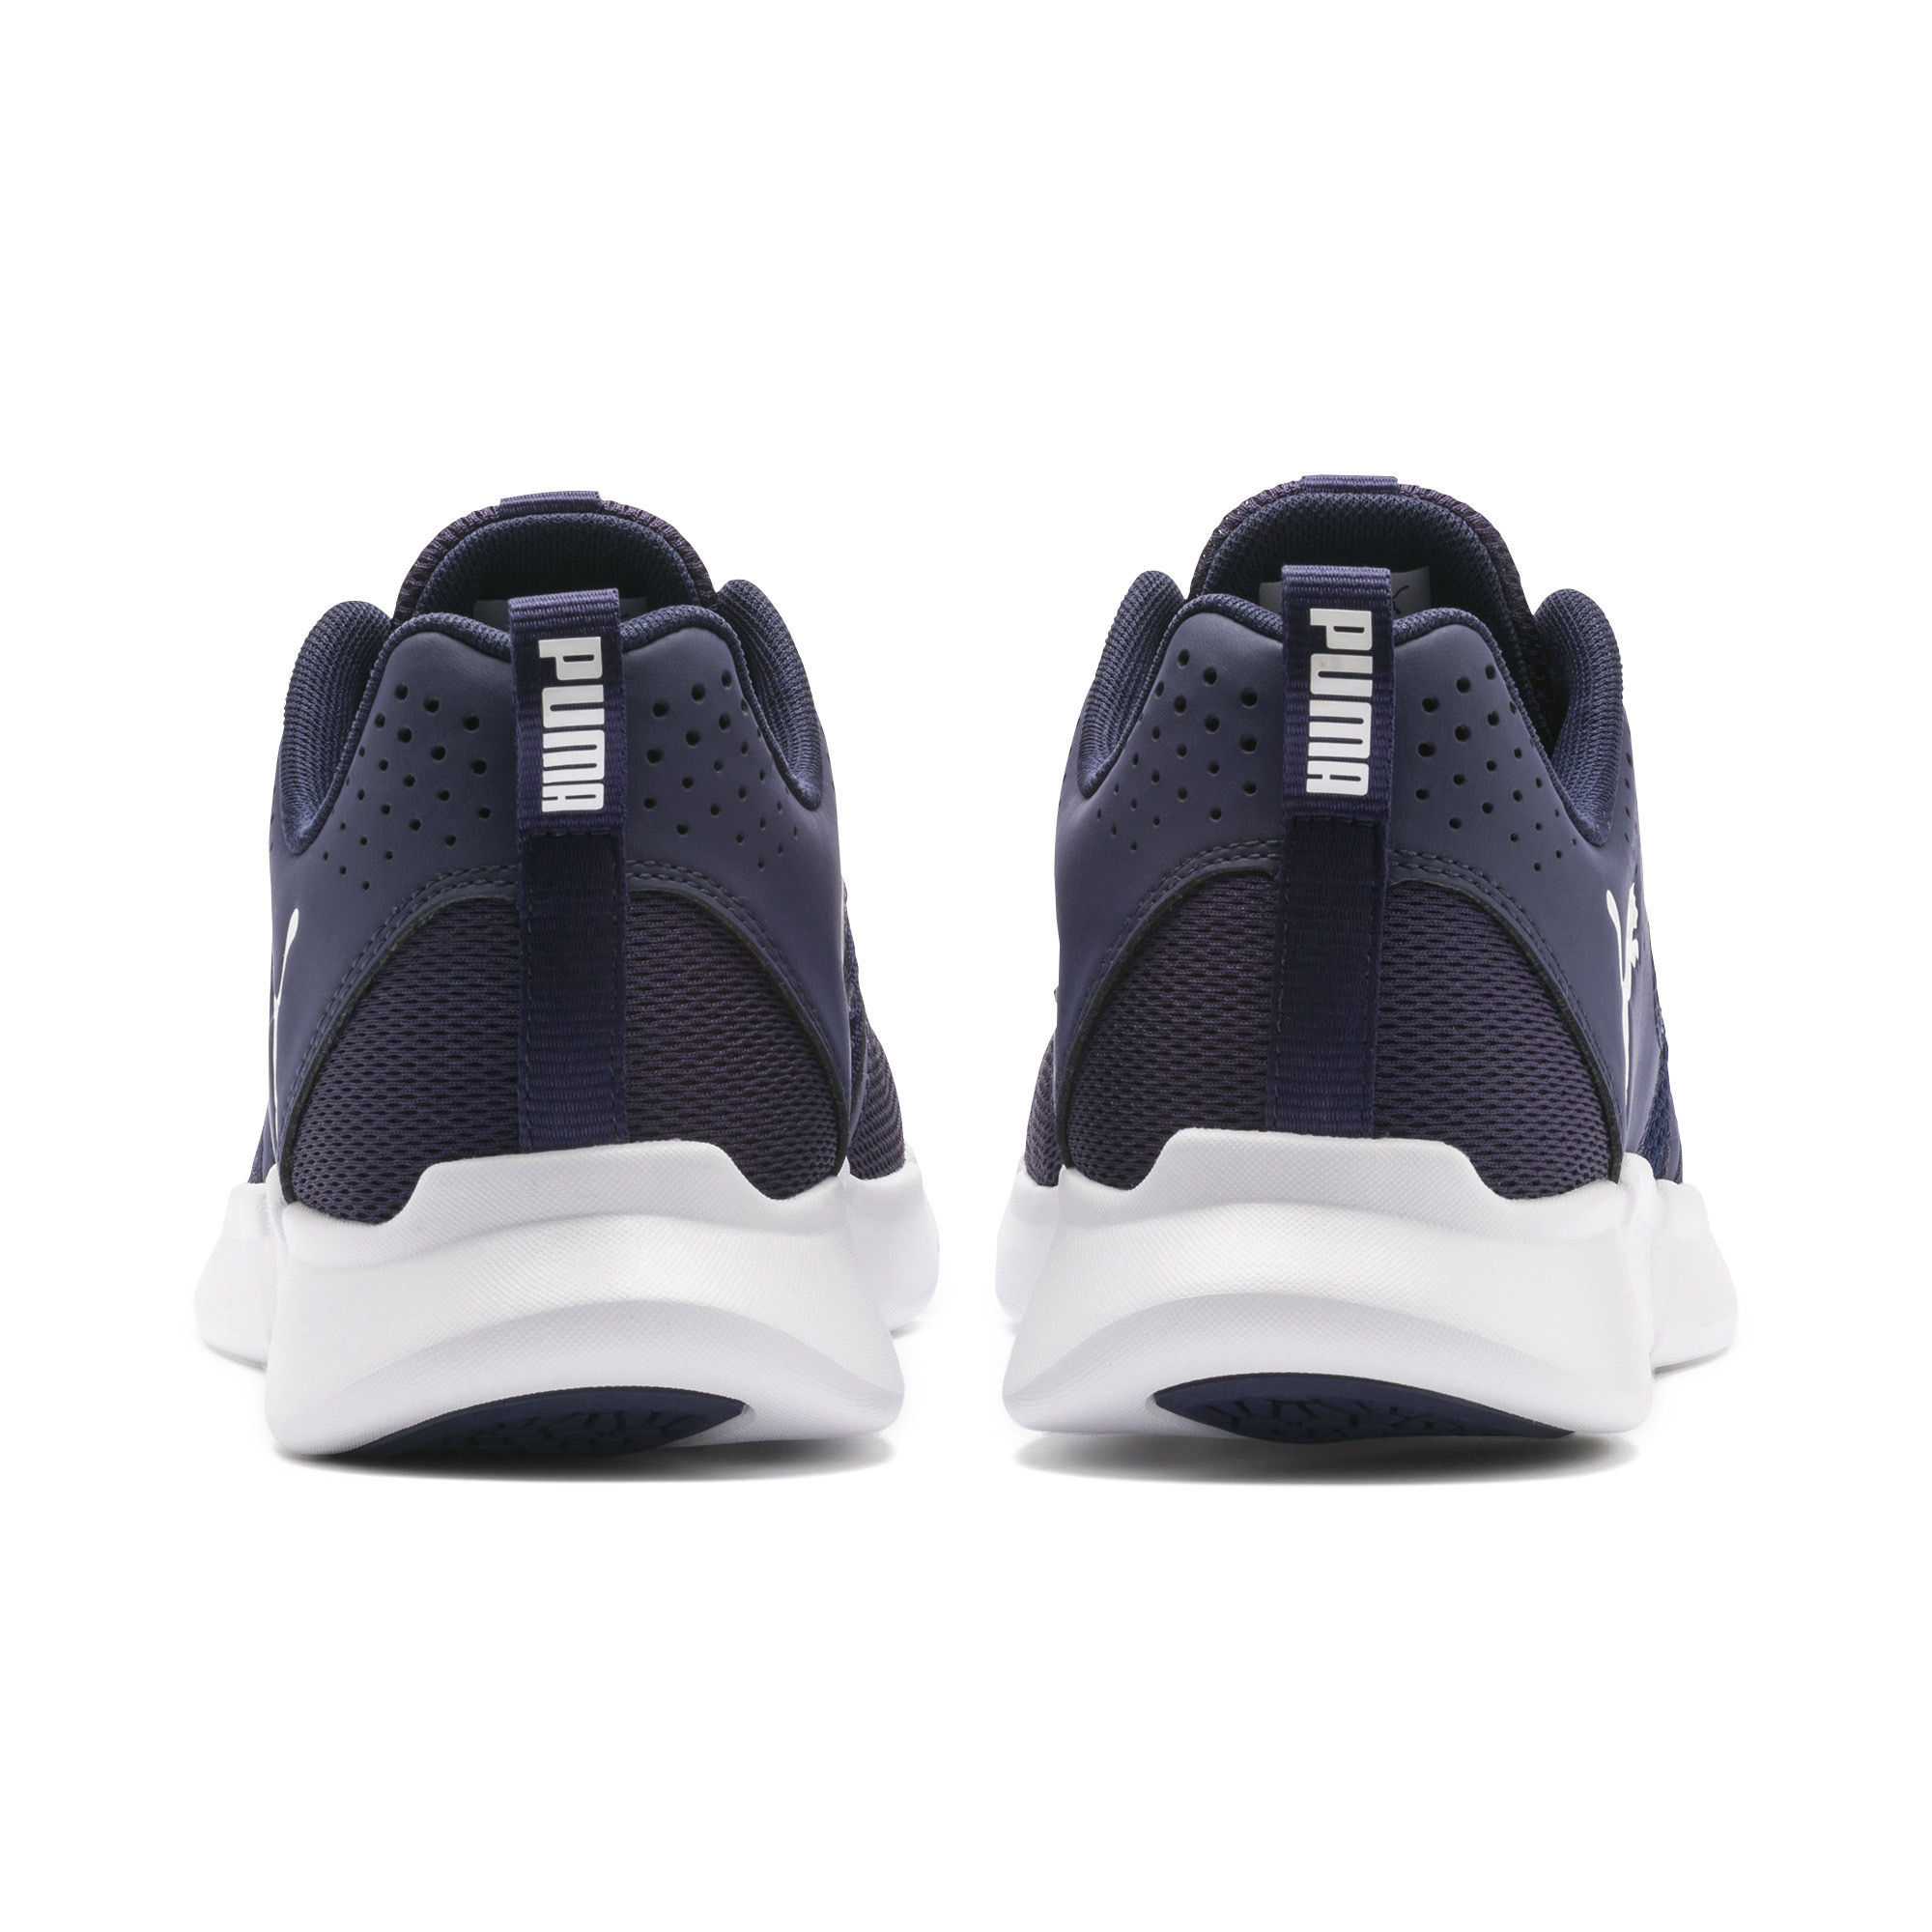 PUMA-INTERFLEX-Modern-Men-039-s-Sneakers-Unisex-Shoe-Running thumbnail 3